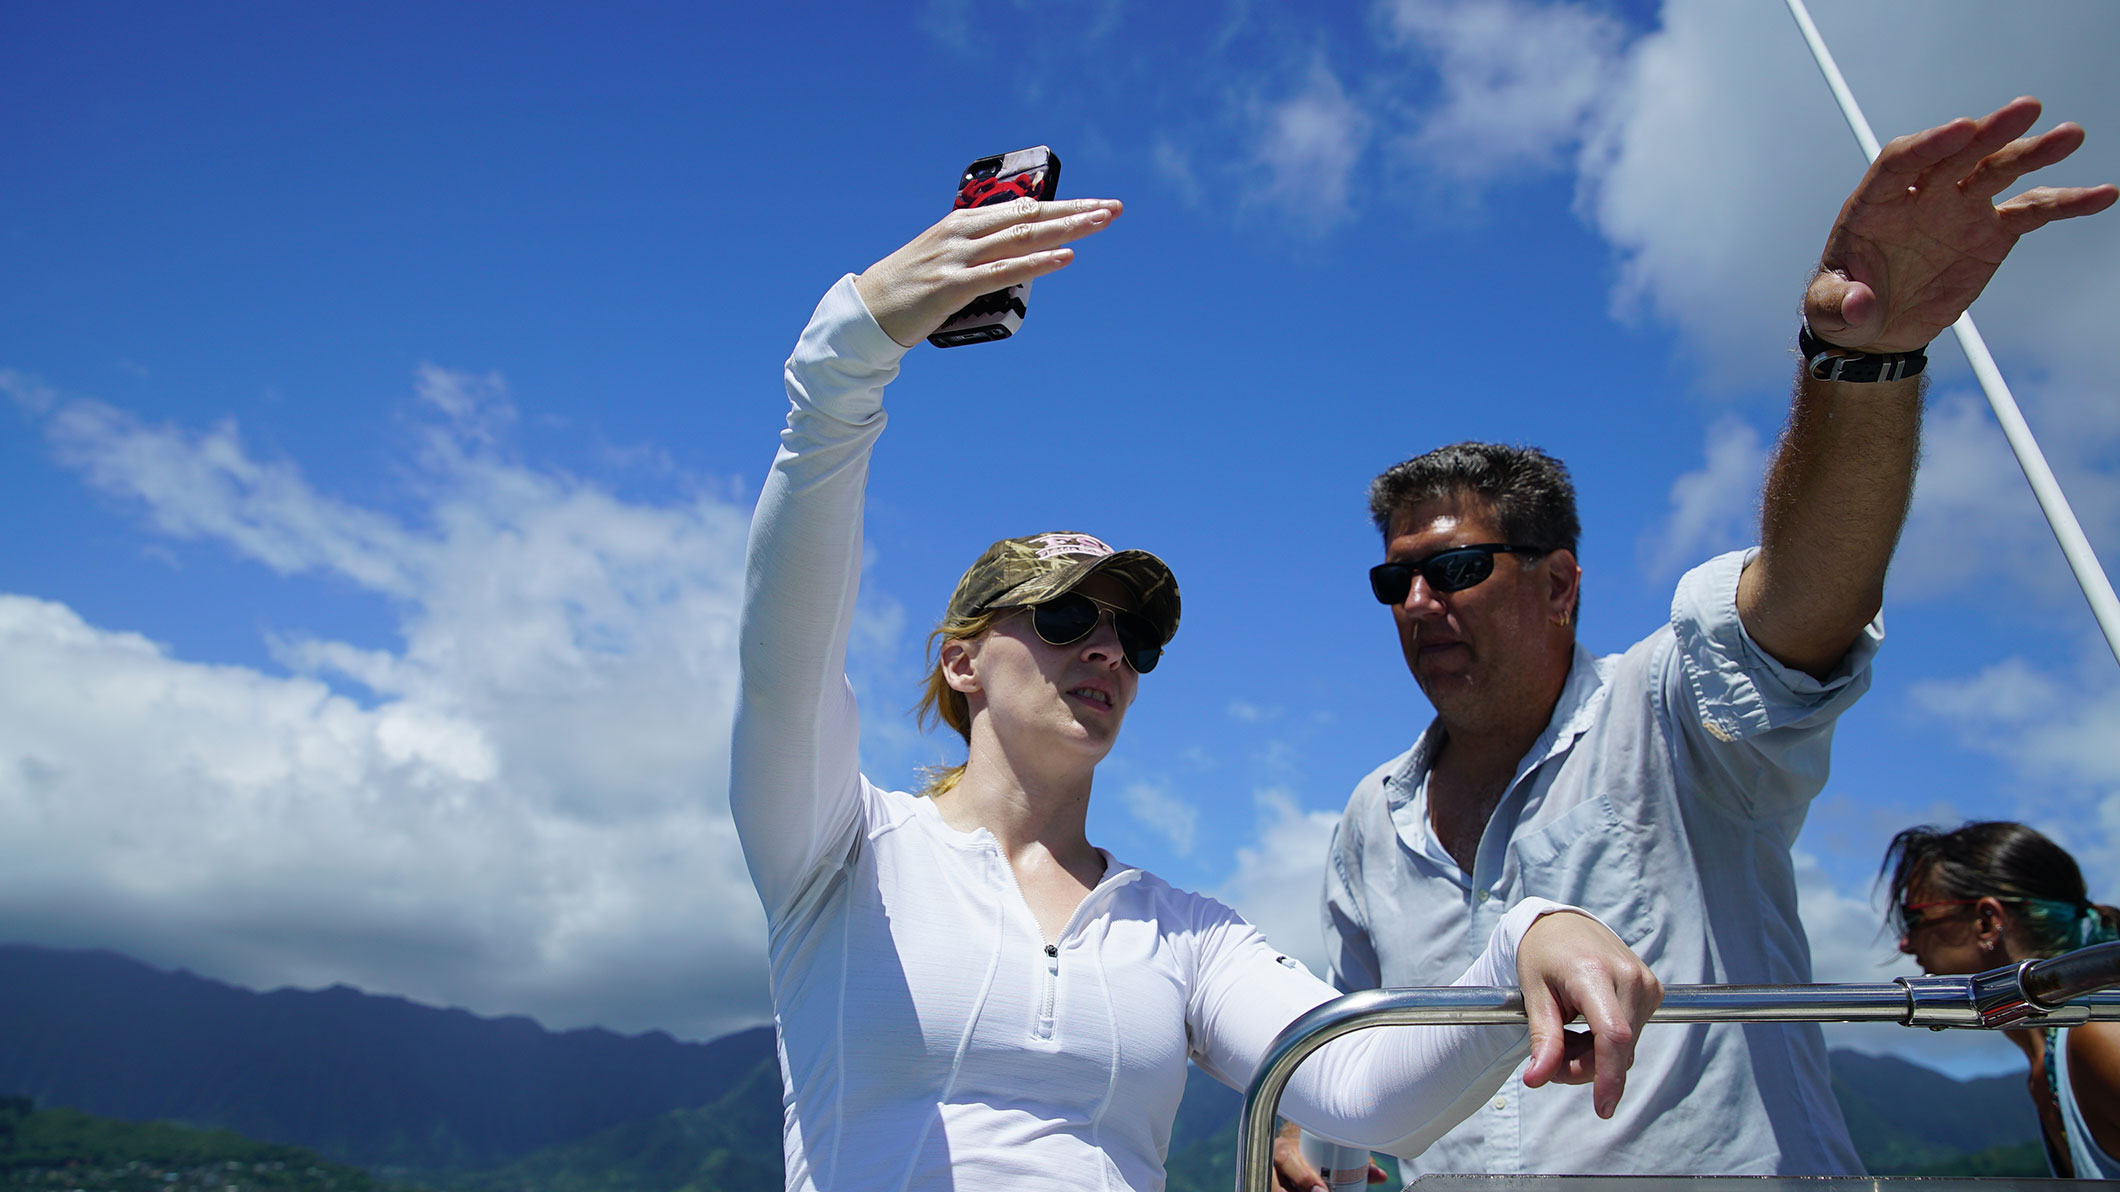 CORAL scientists identify reef locations at Kaneohe Bay (Oahu, Hawaii).